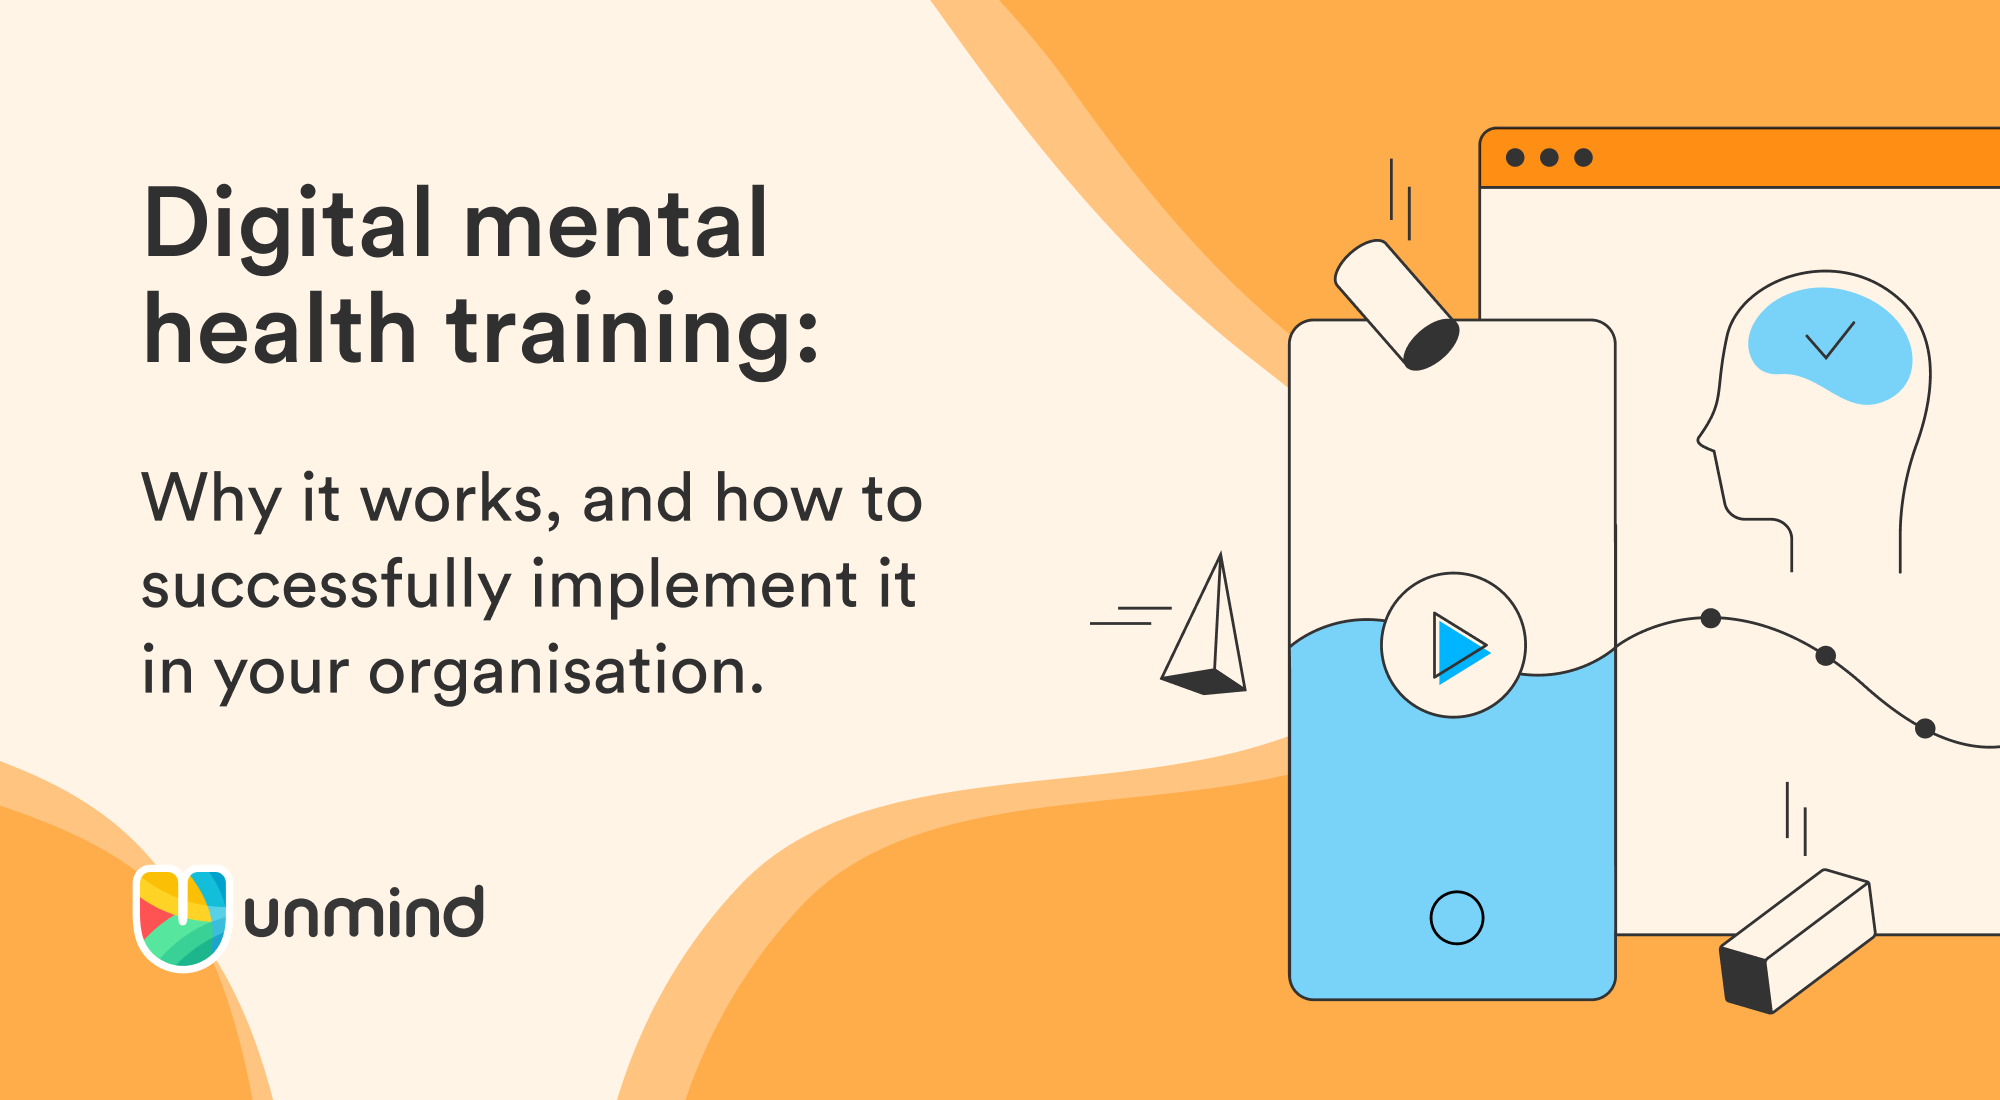 Digital mental health training: Why it works, and how to implement it successfully at your organisation.